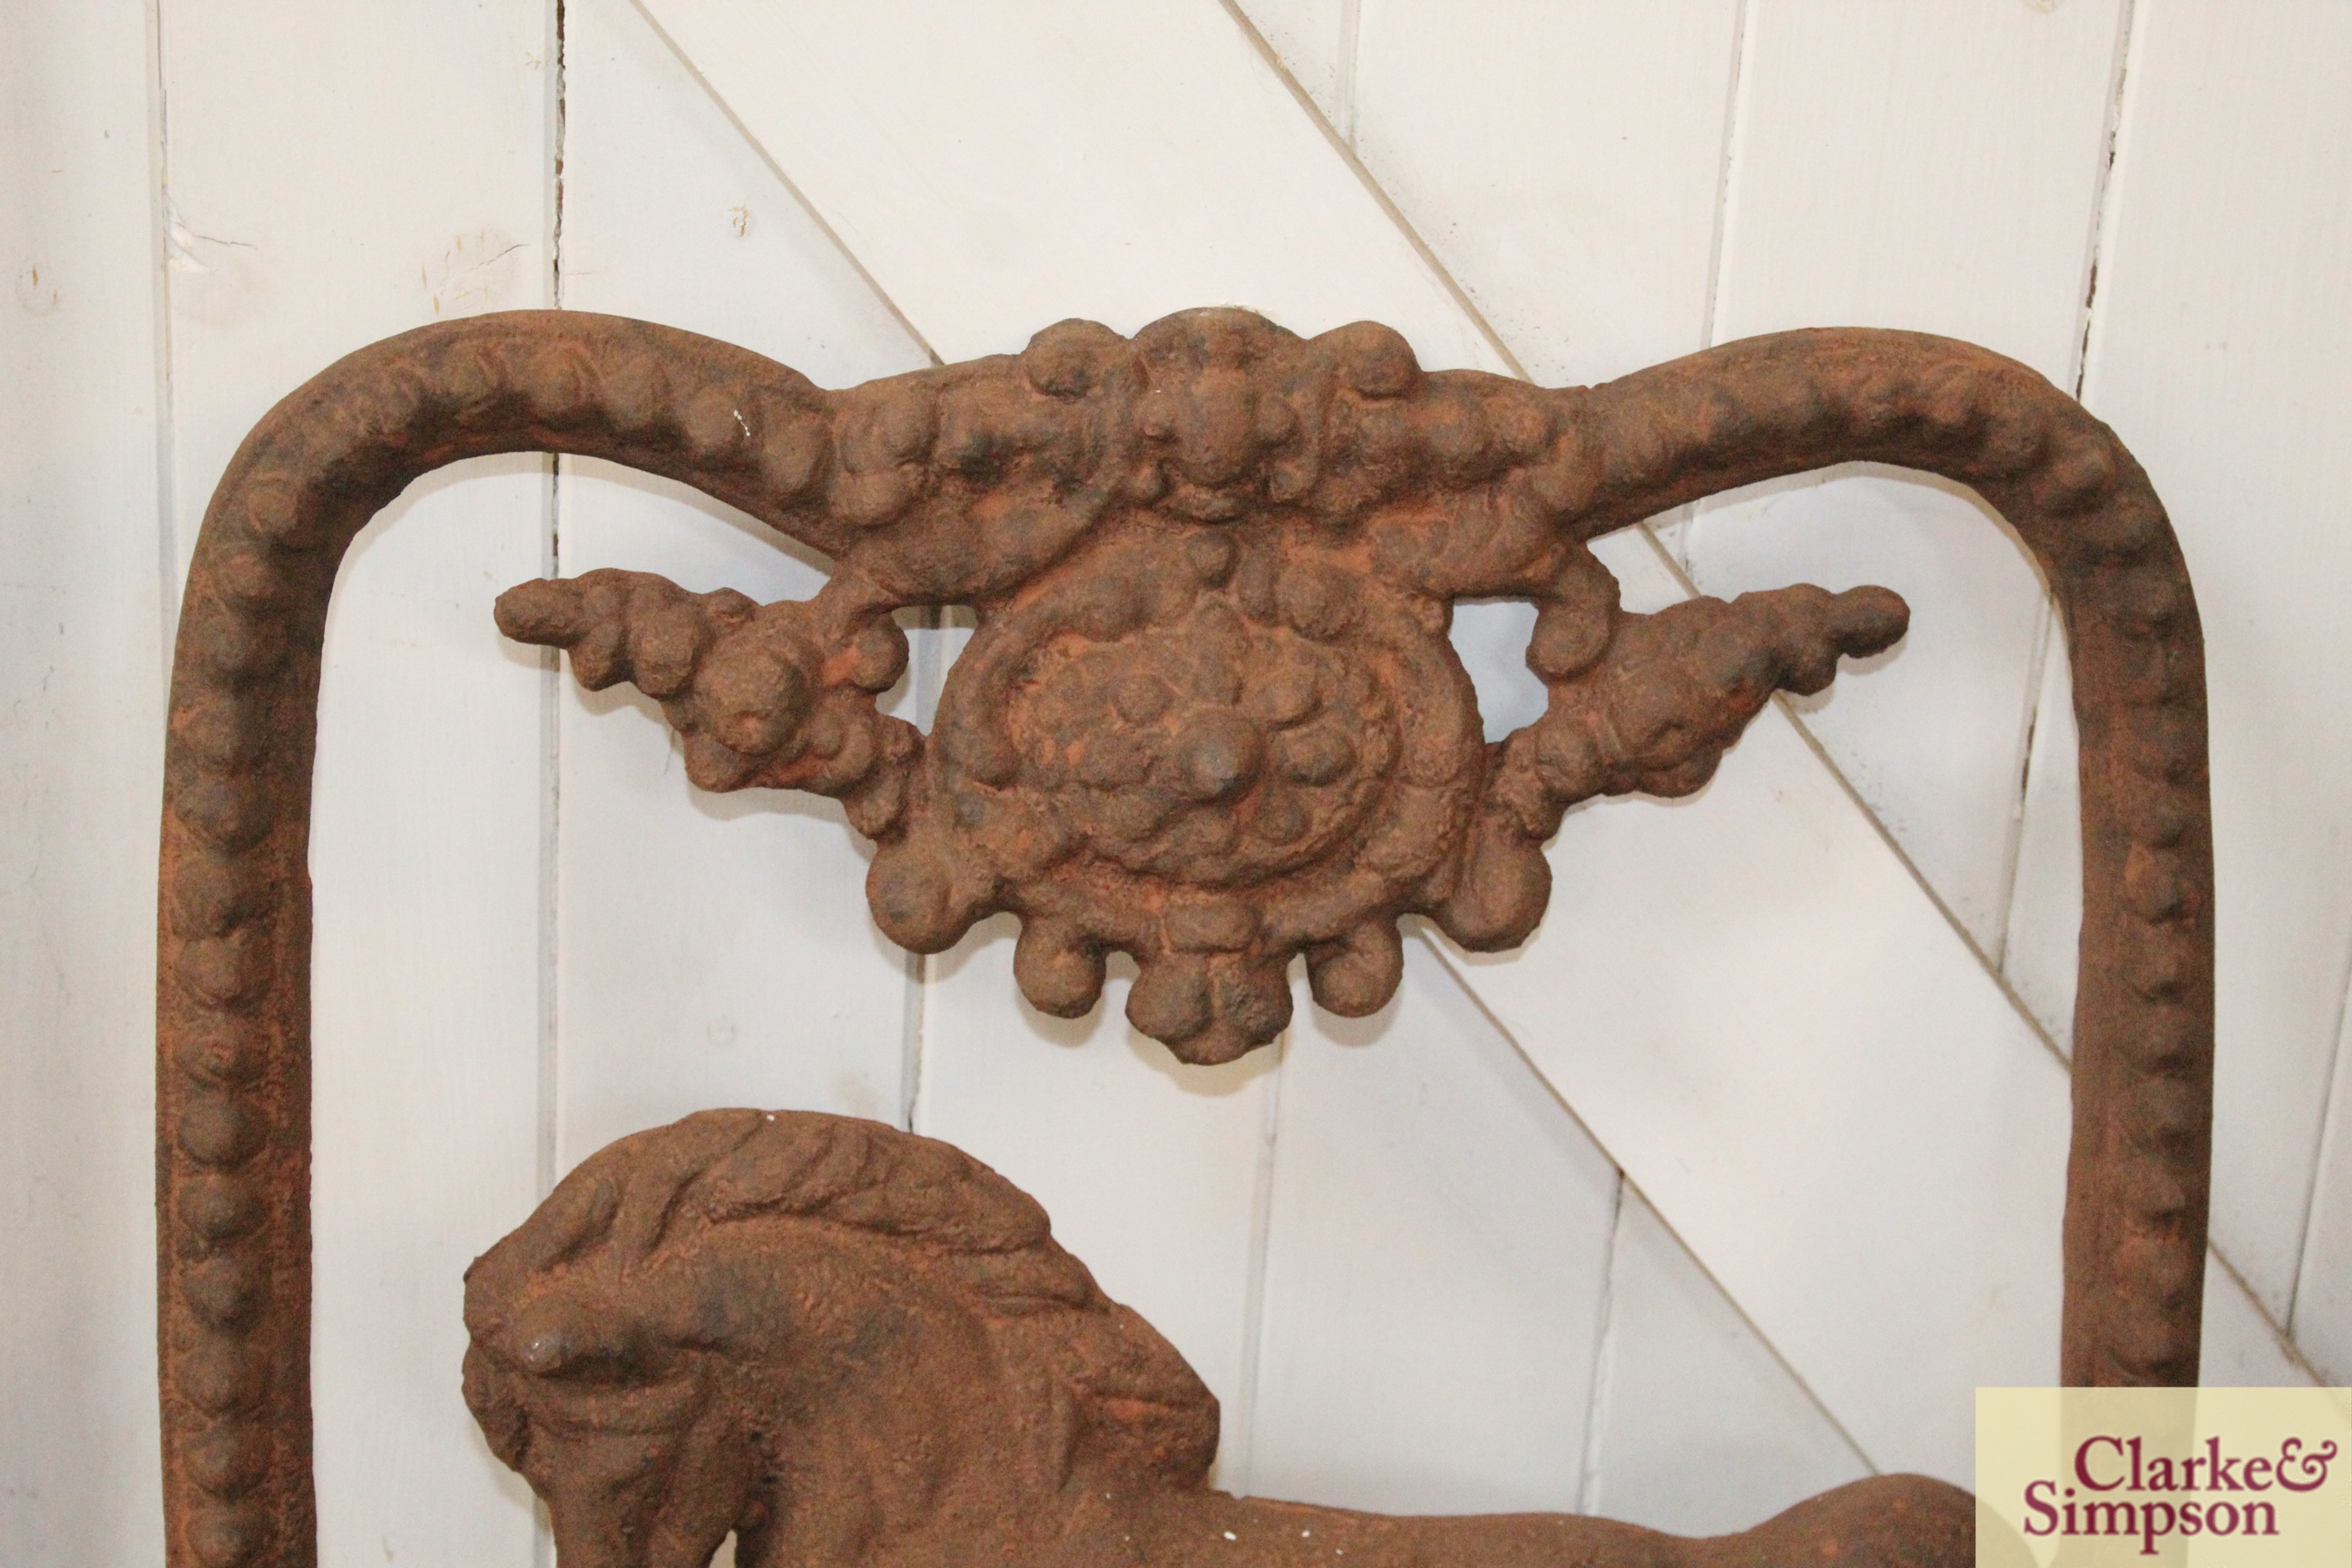 A Victorian style cast iron horse decorated stable windo - Image 2 of 4